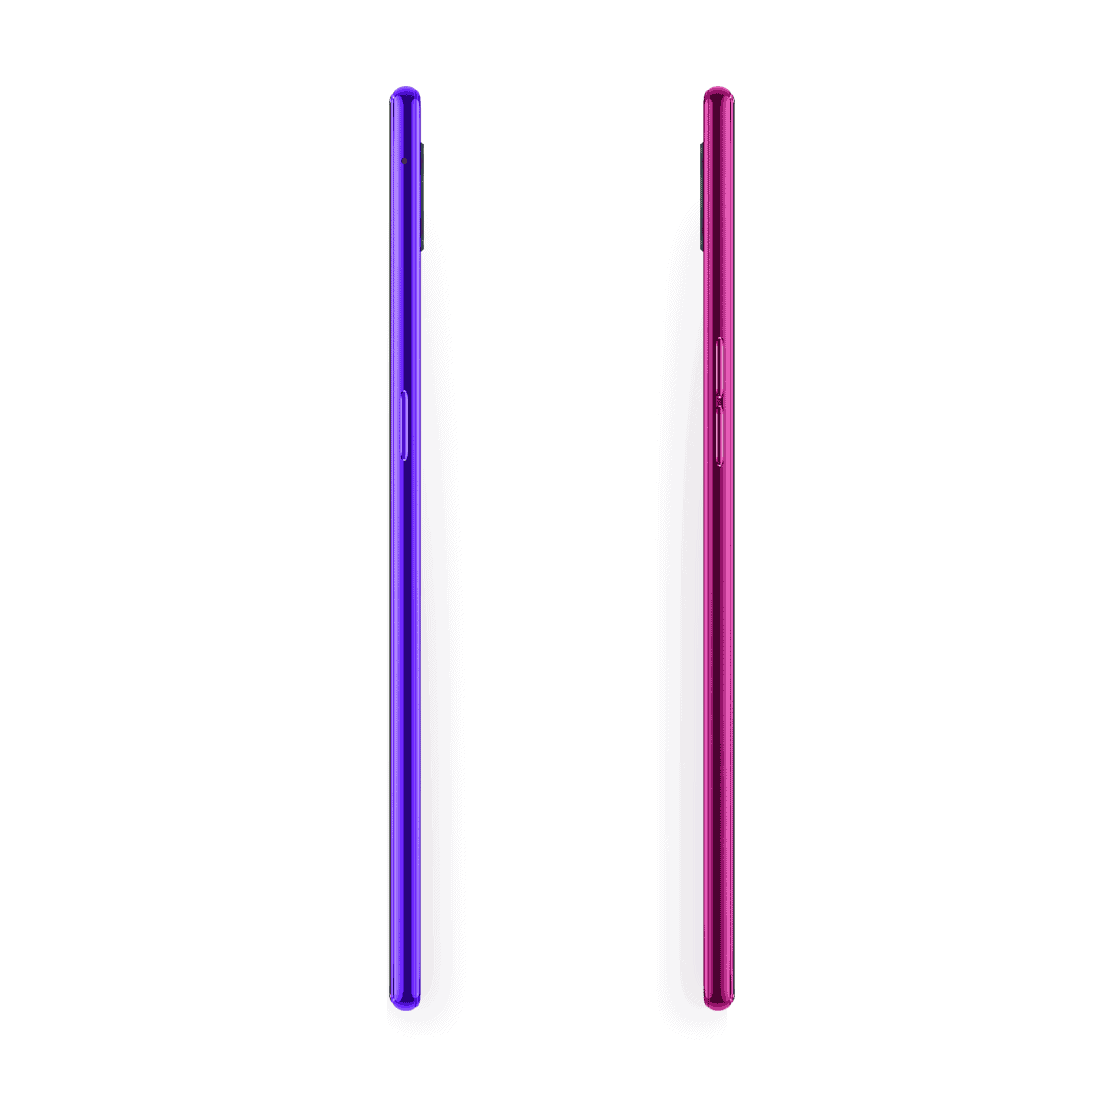 OPPO R17 official image 9